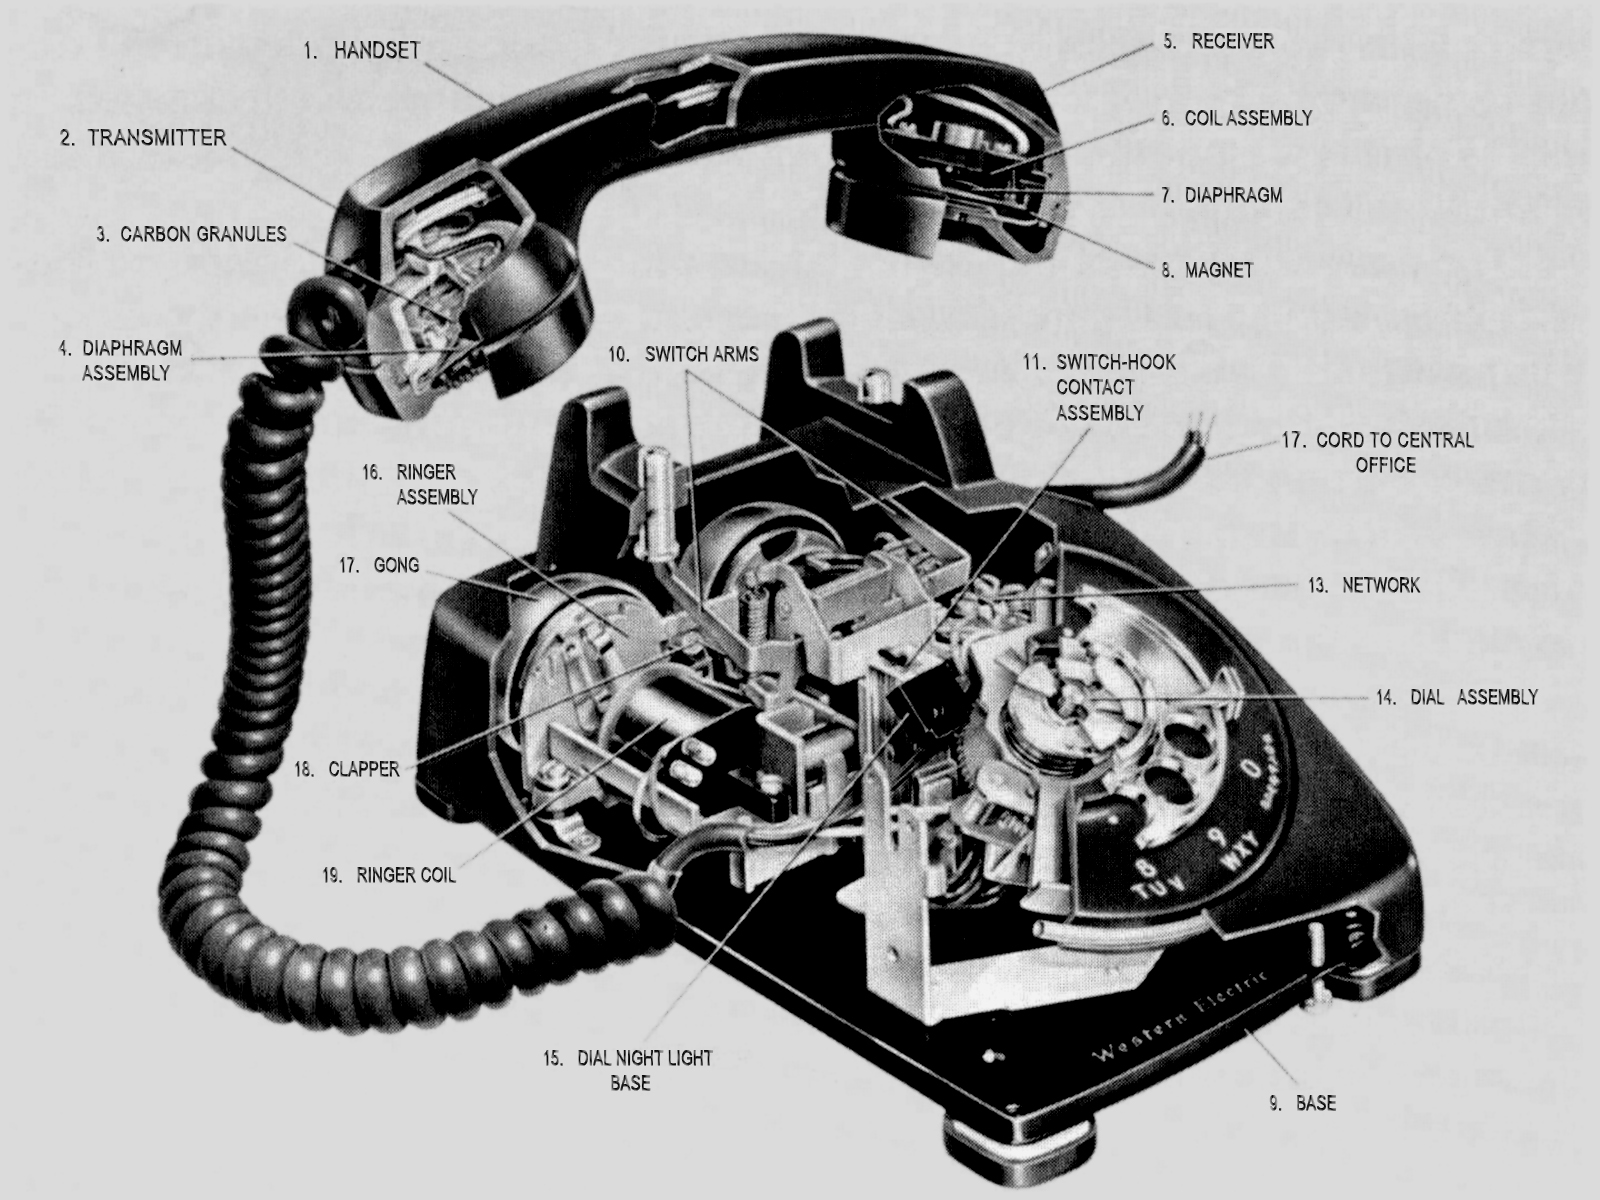 Antique_Rotary_Telephone_by_staticnuts diagrams rotary telephone wiring diagram bell old rotary phone wiring diagram for old rotary phone at virtualis.co